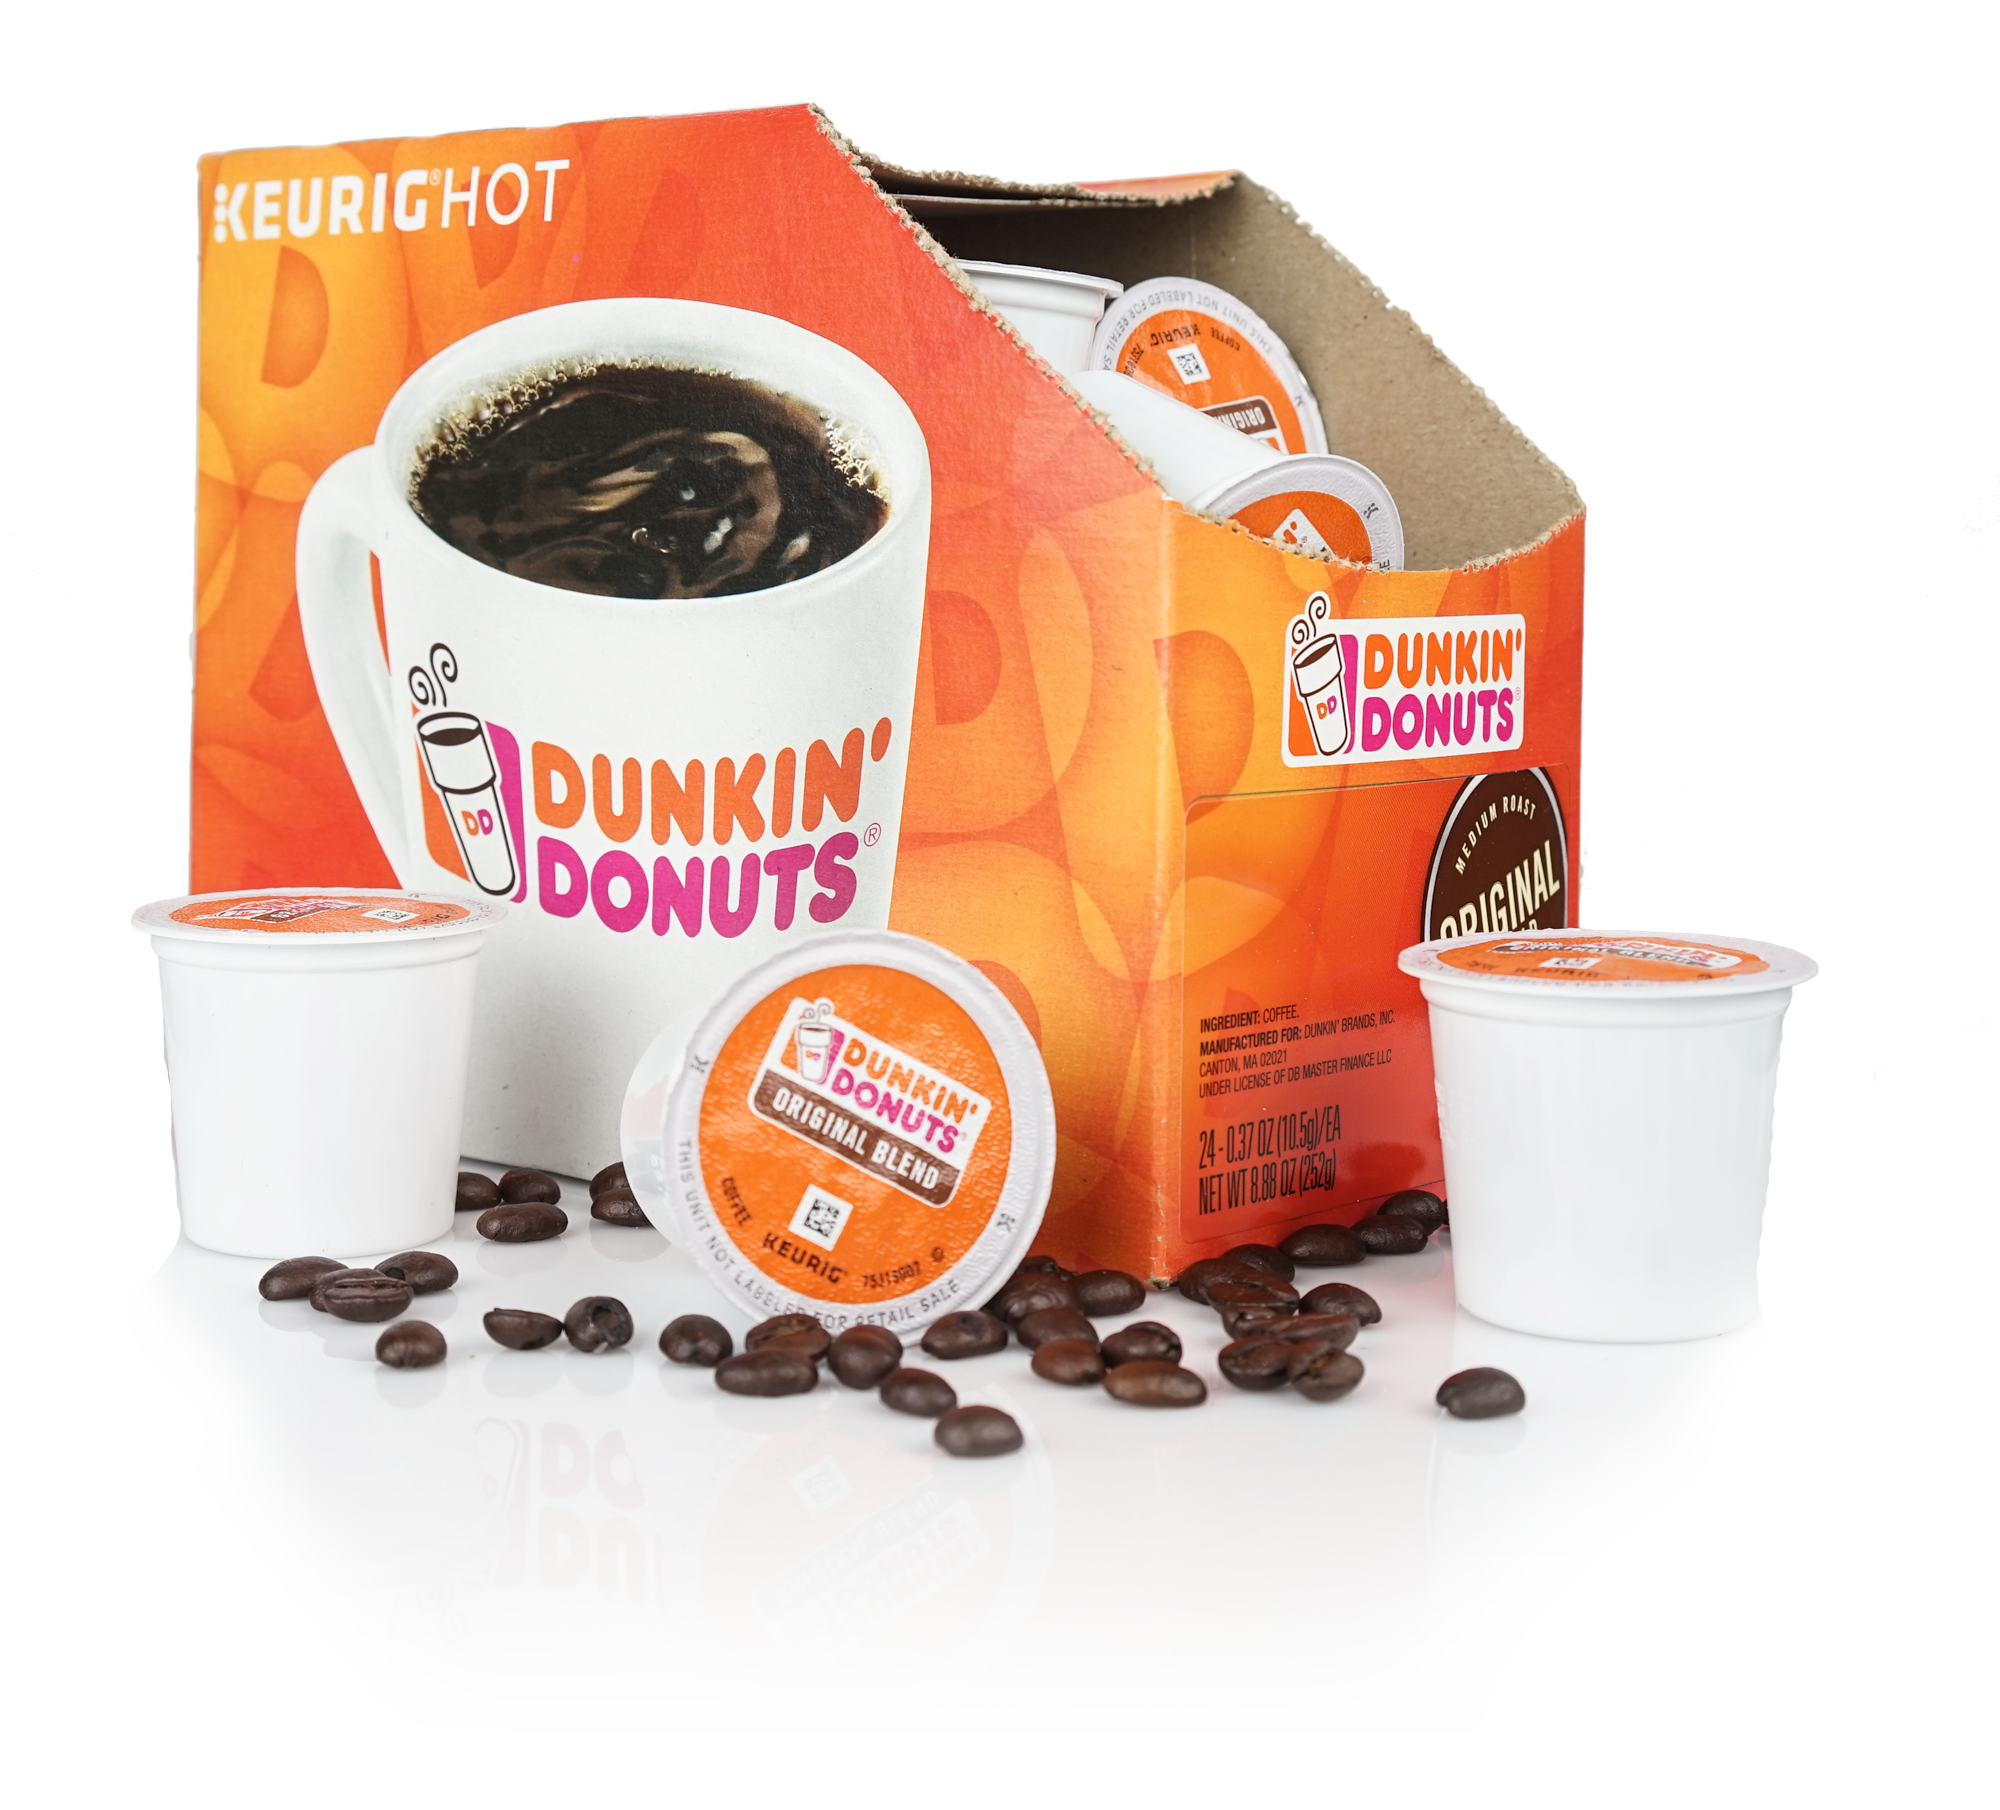 Dunkin' Donuts Office Coffee Supply Tampa Florida